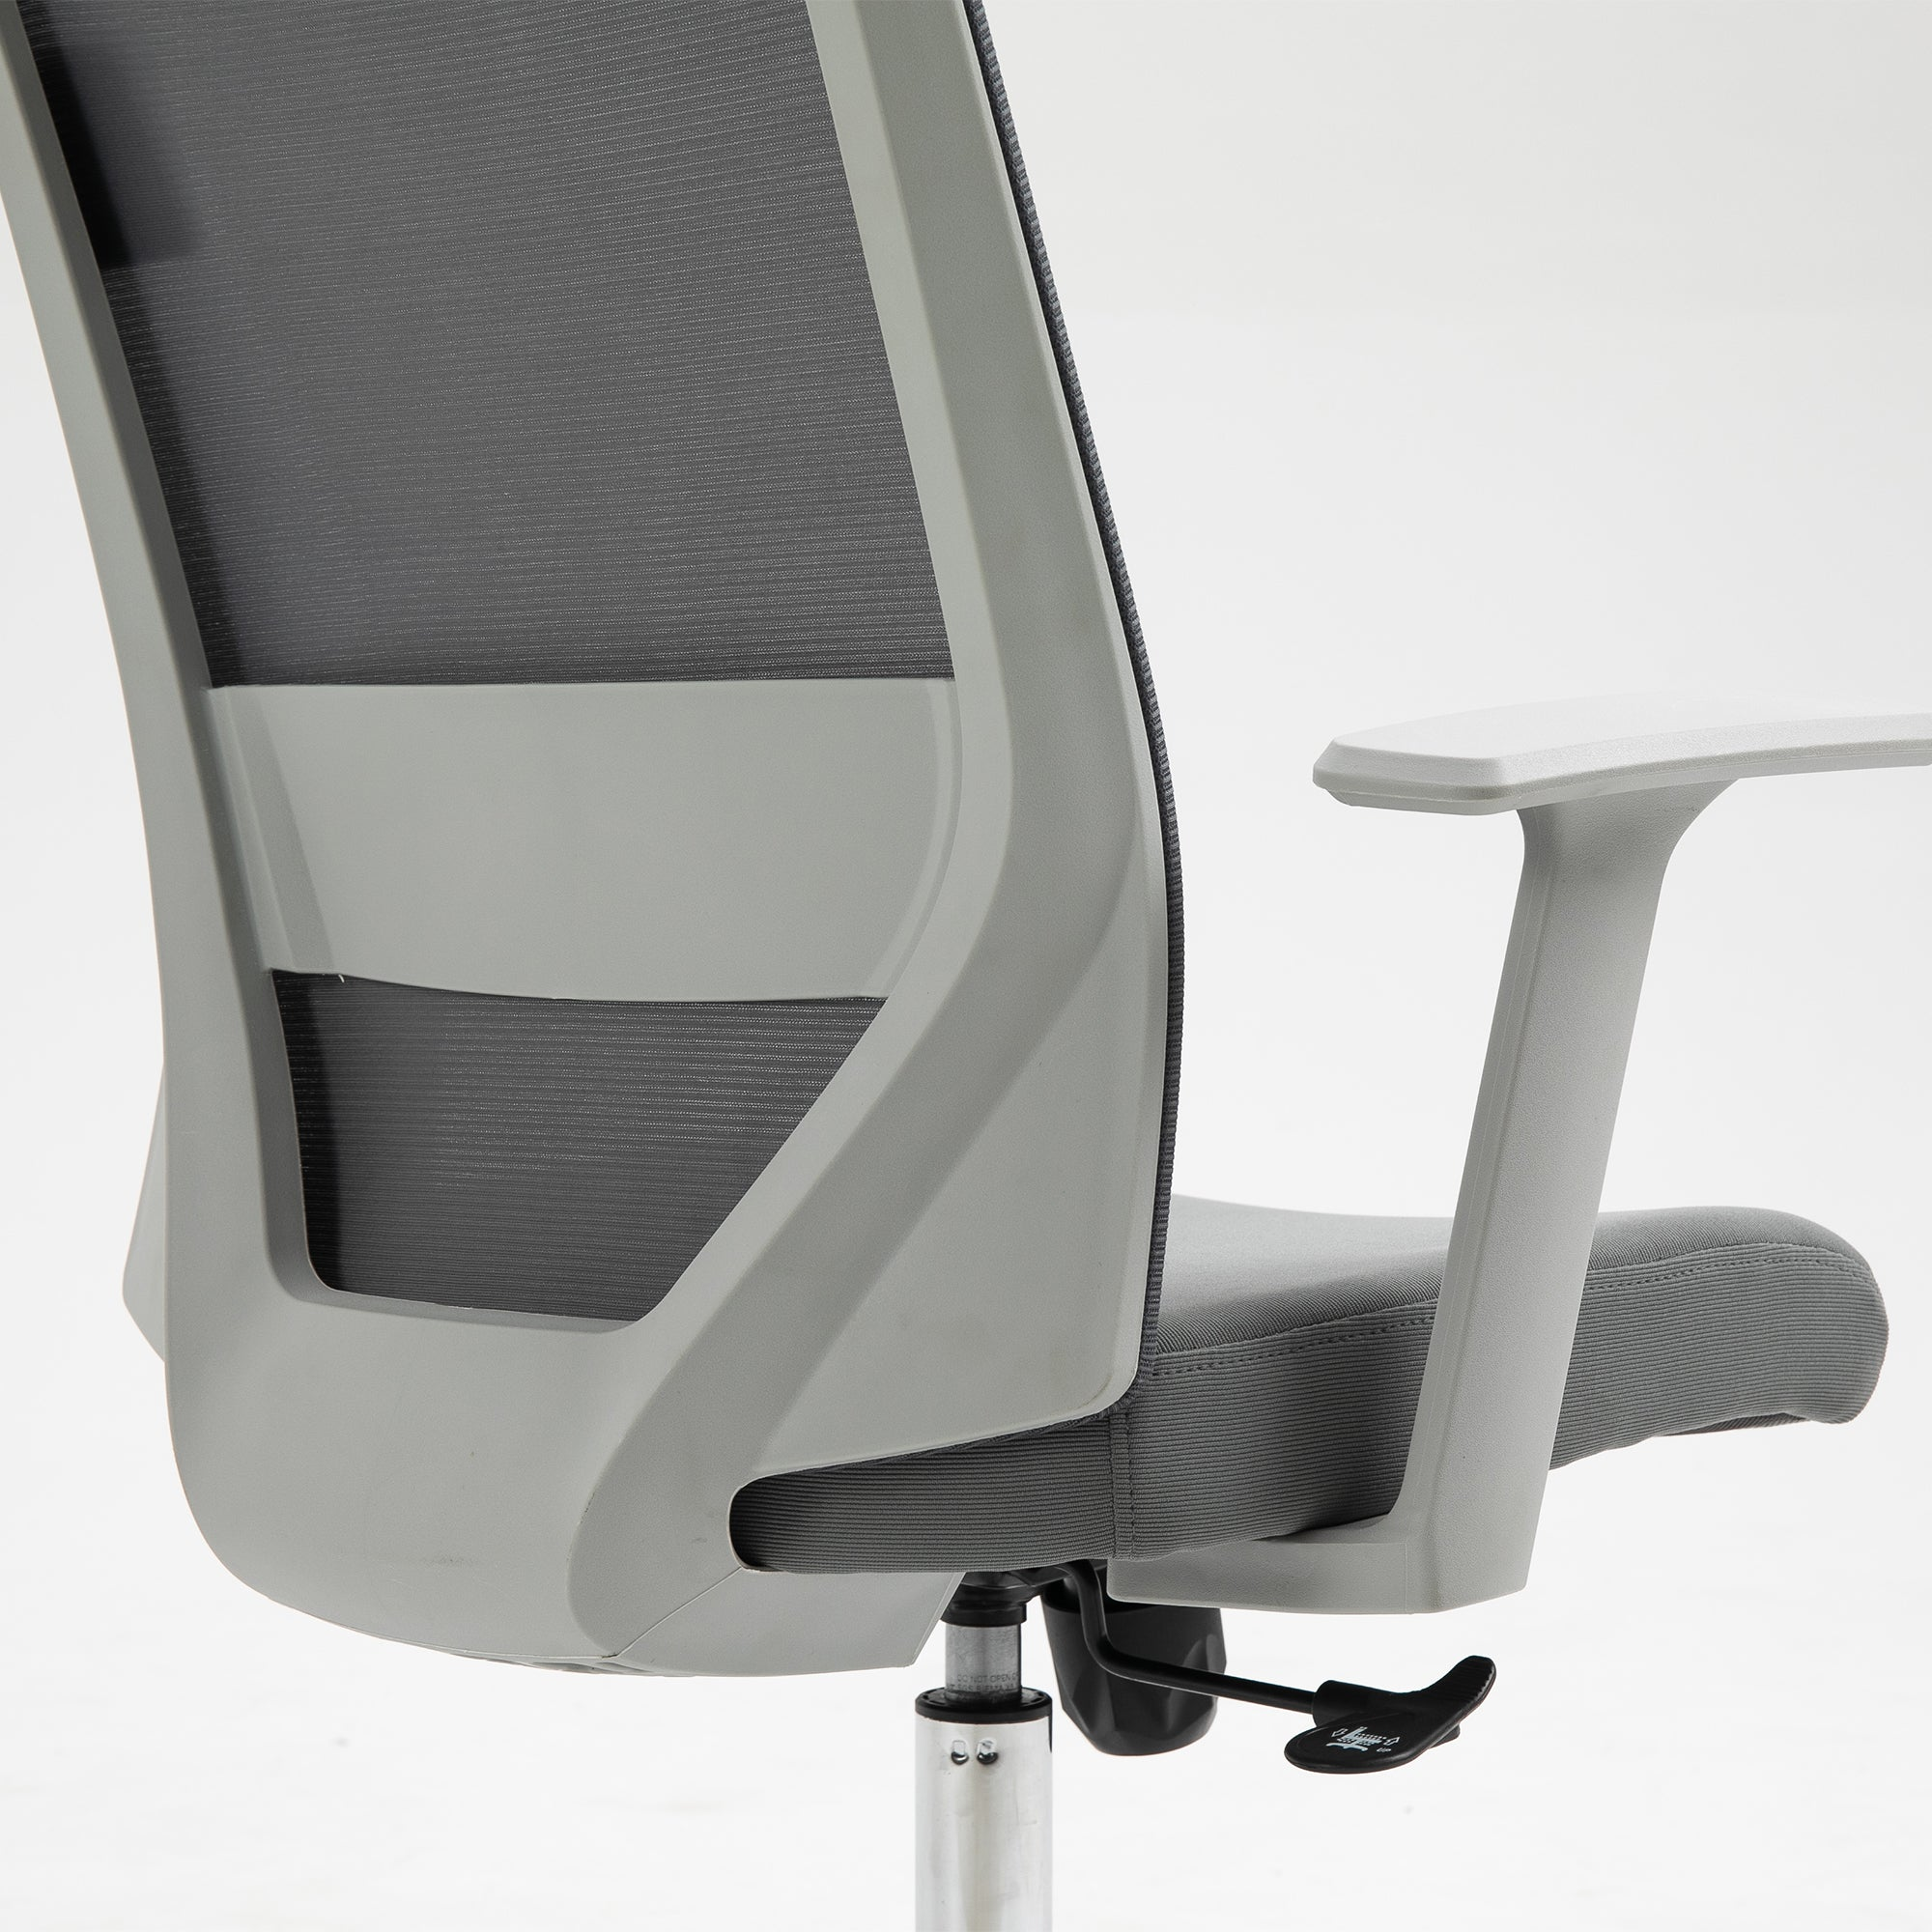 Image of: Joni High Back Mesh Office Chair With Headrest In Grey Shop Designer Home Furnishings